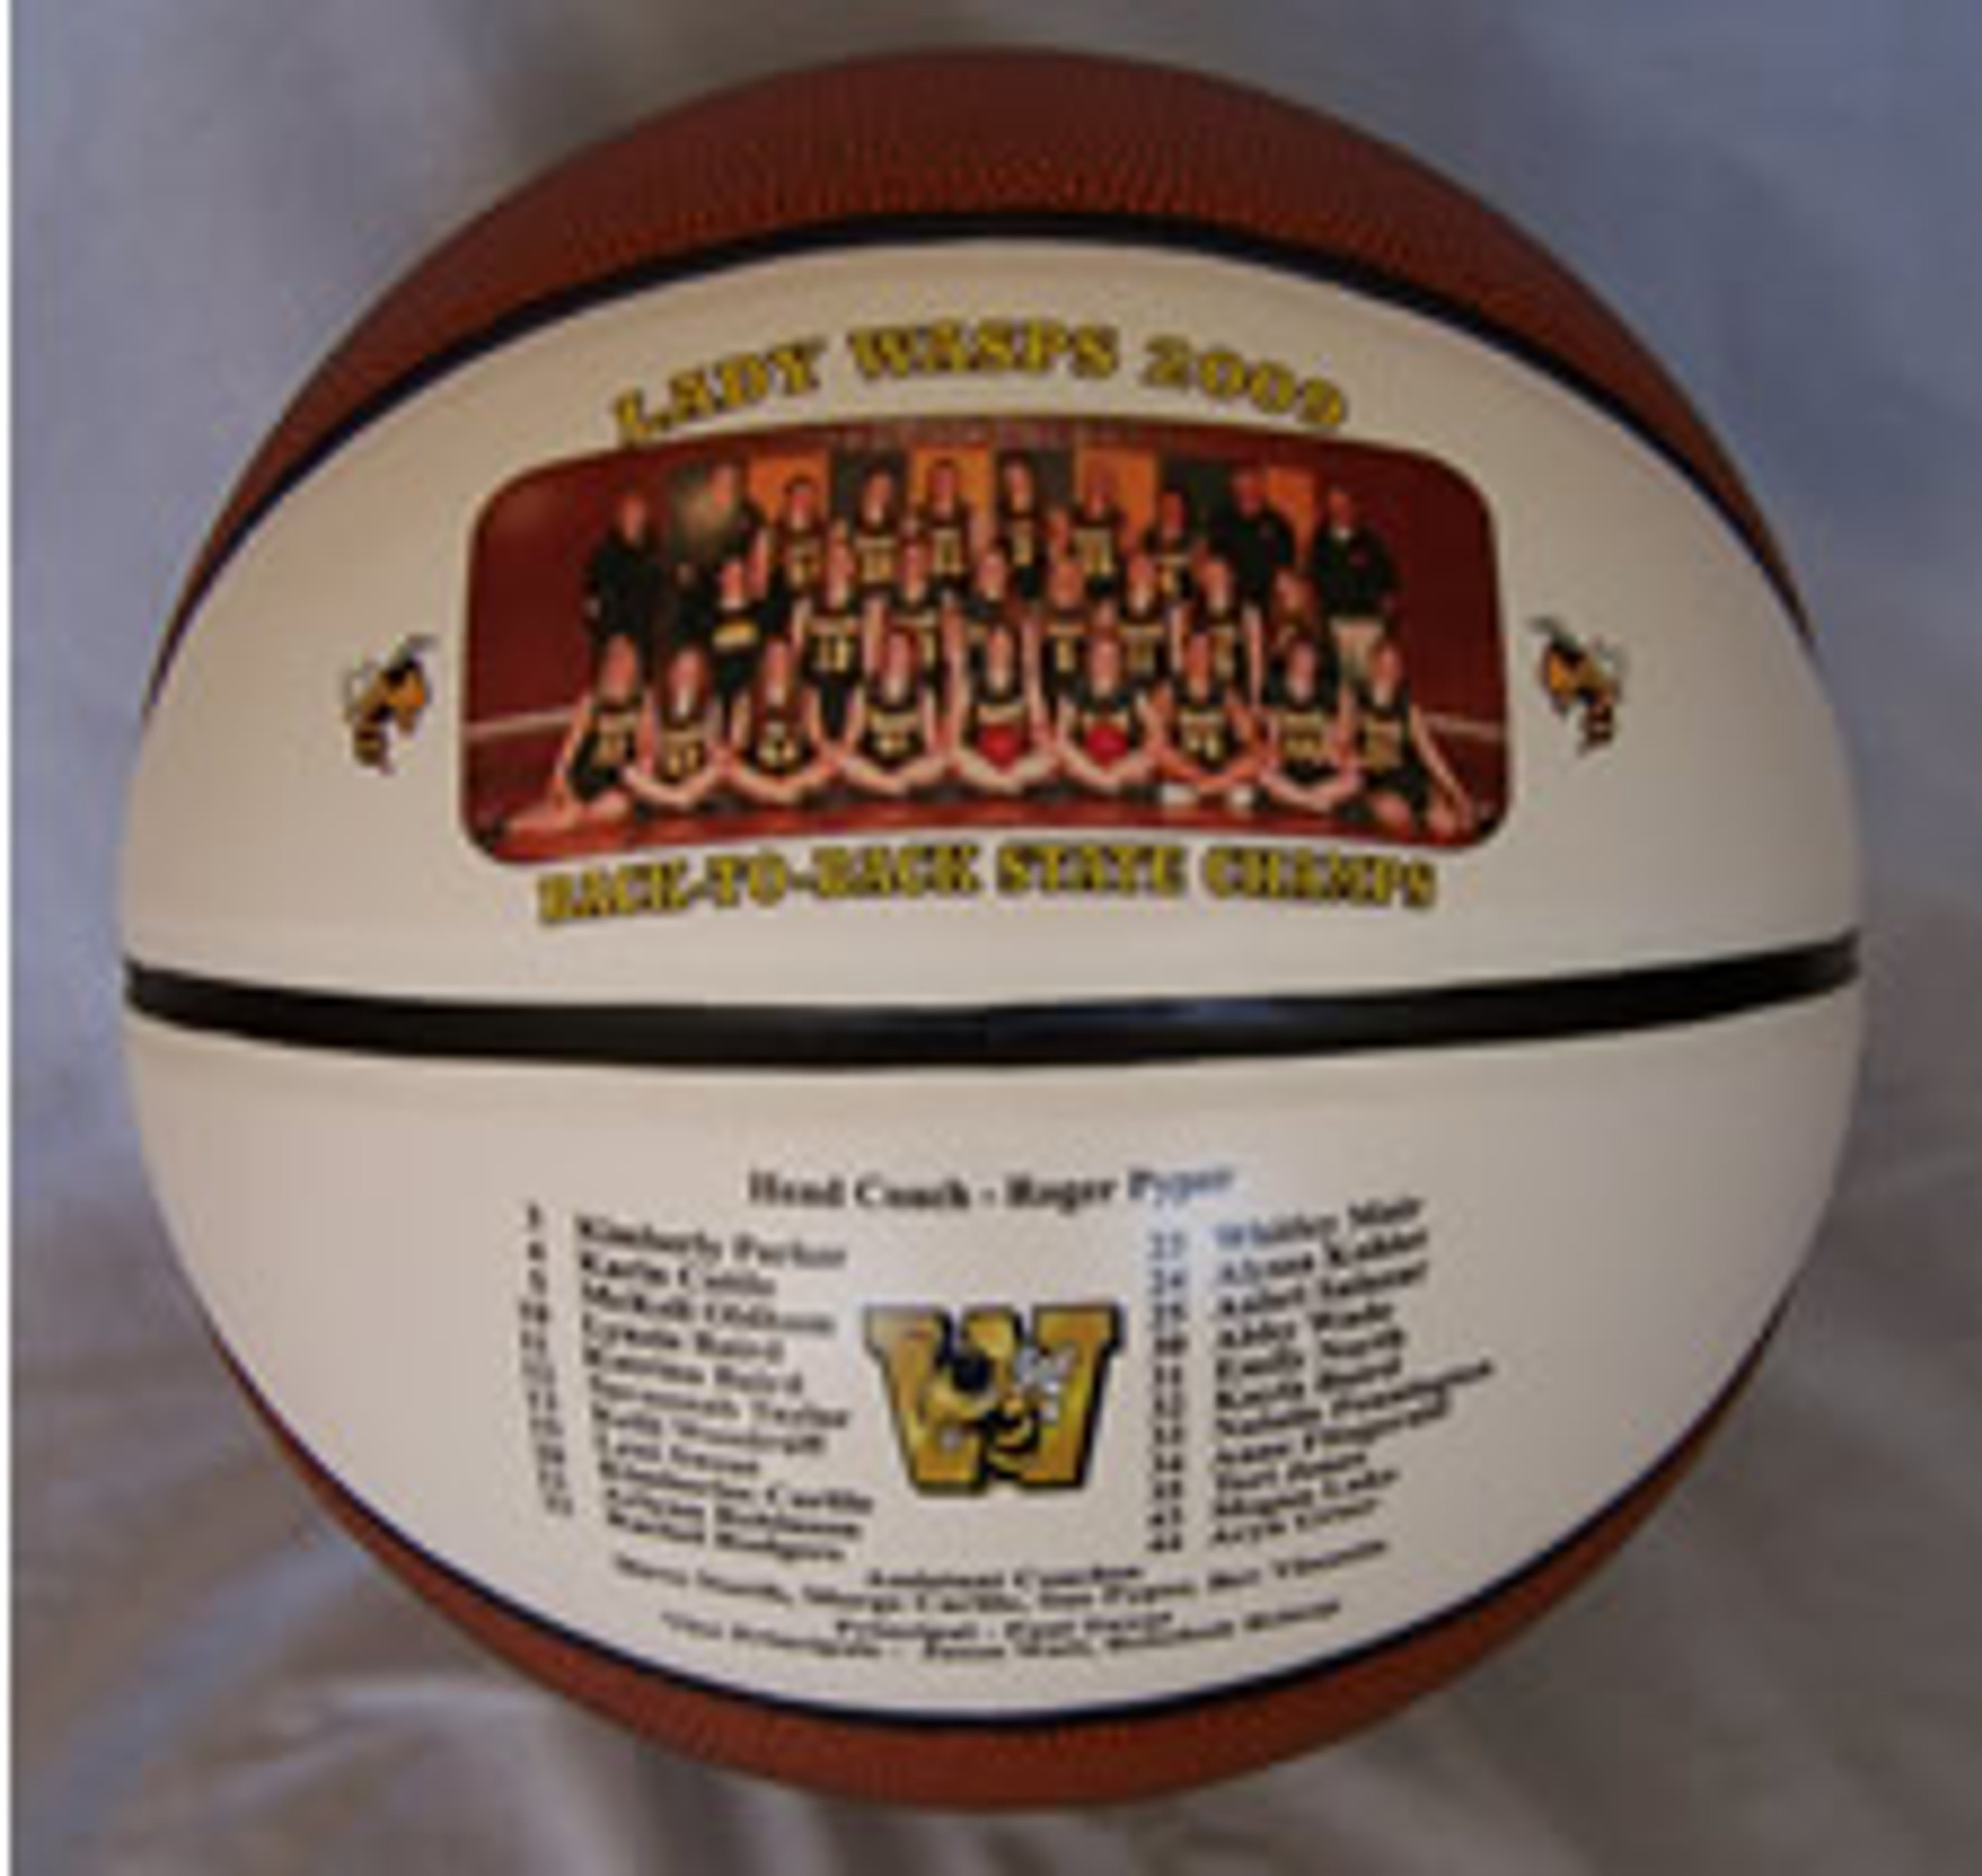 d15f989b238bea Need a gift Personalized sports balls are a great gift idea for any sports  nut.